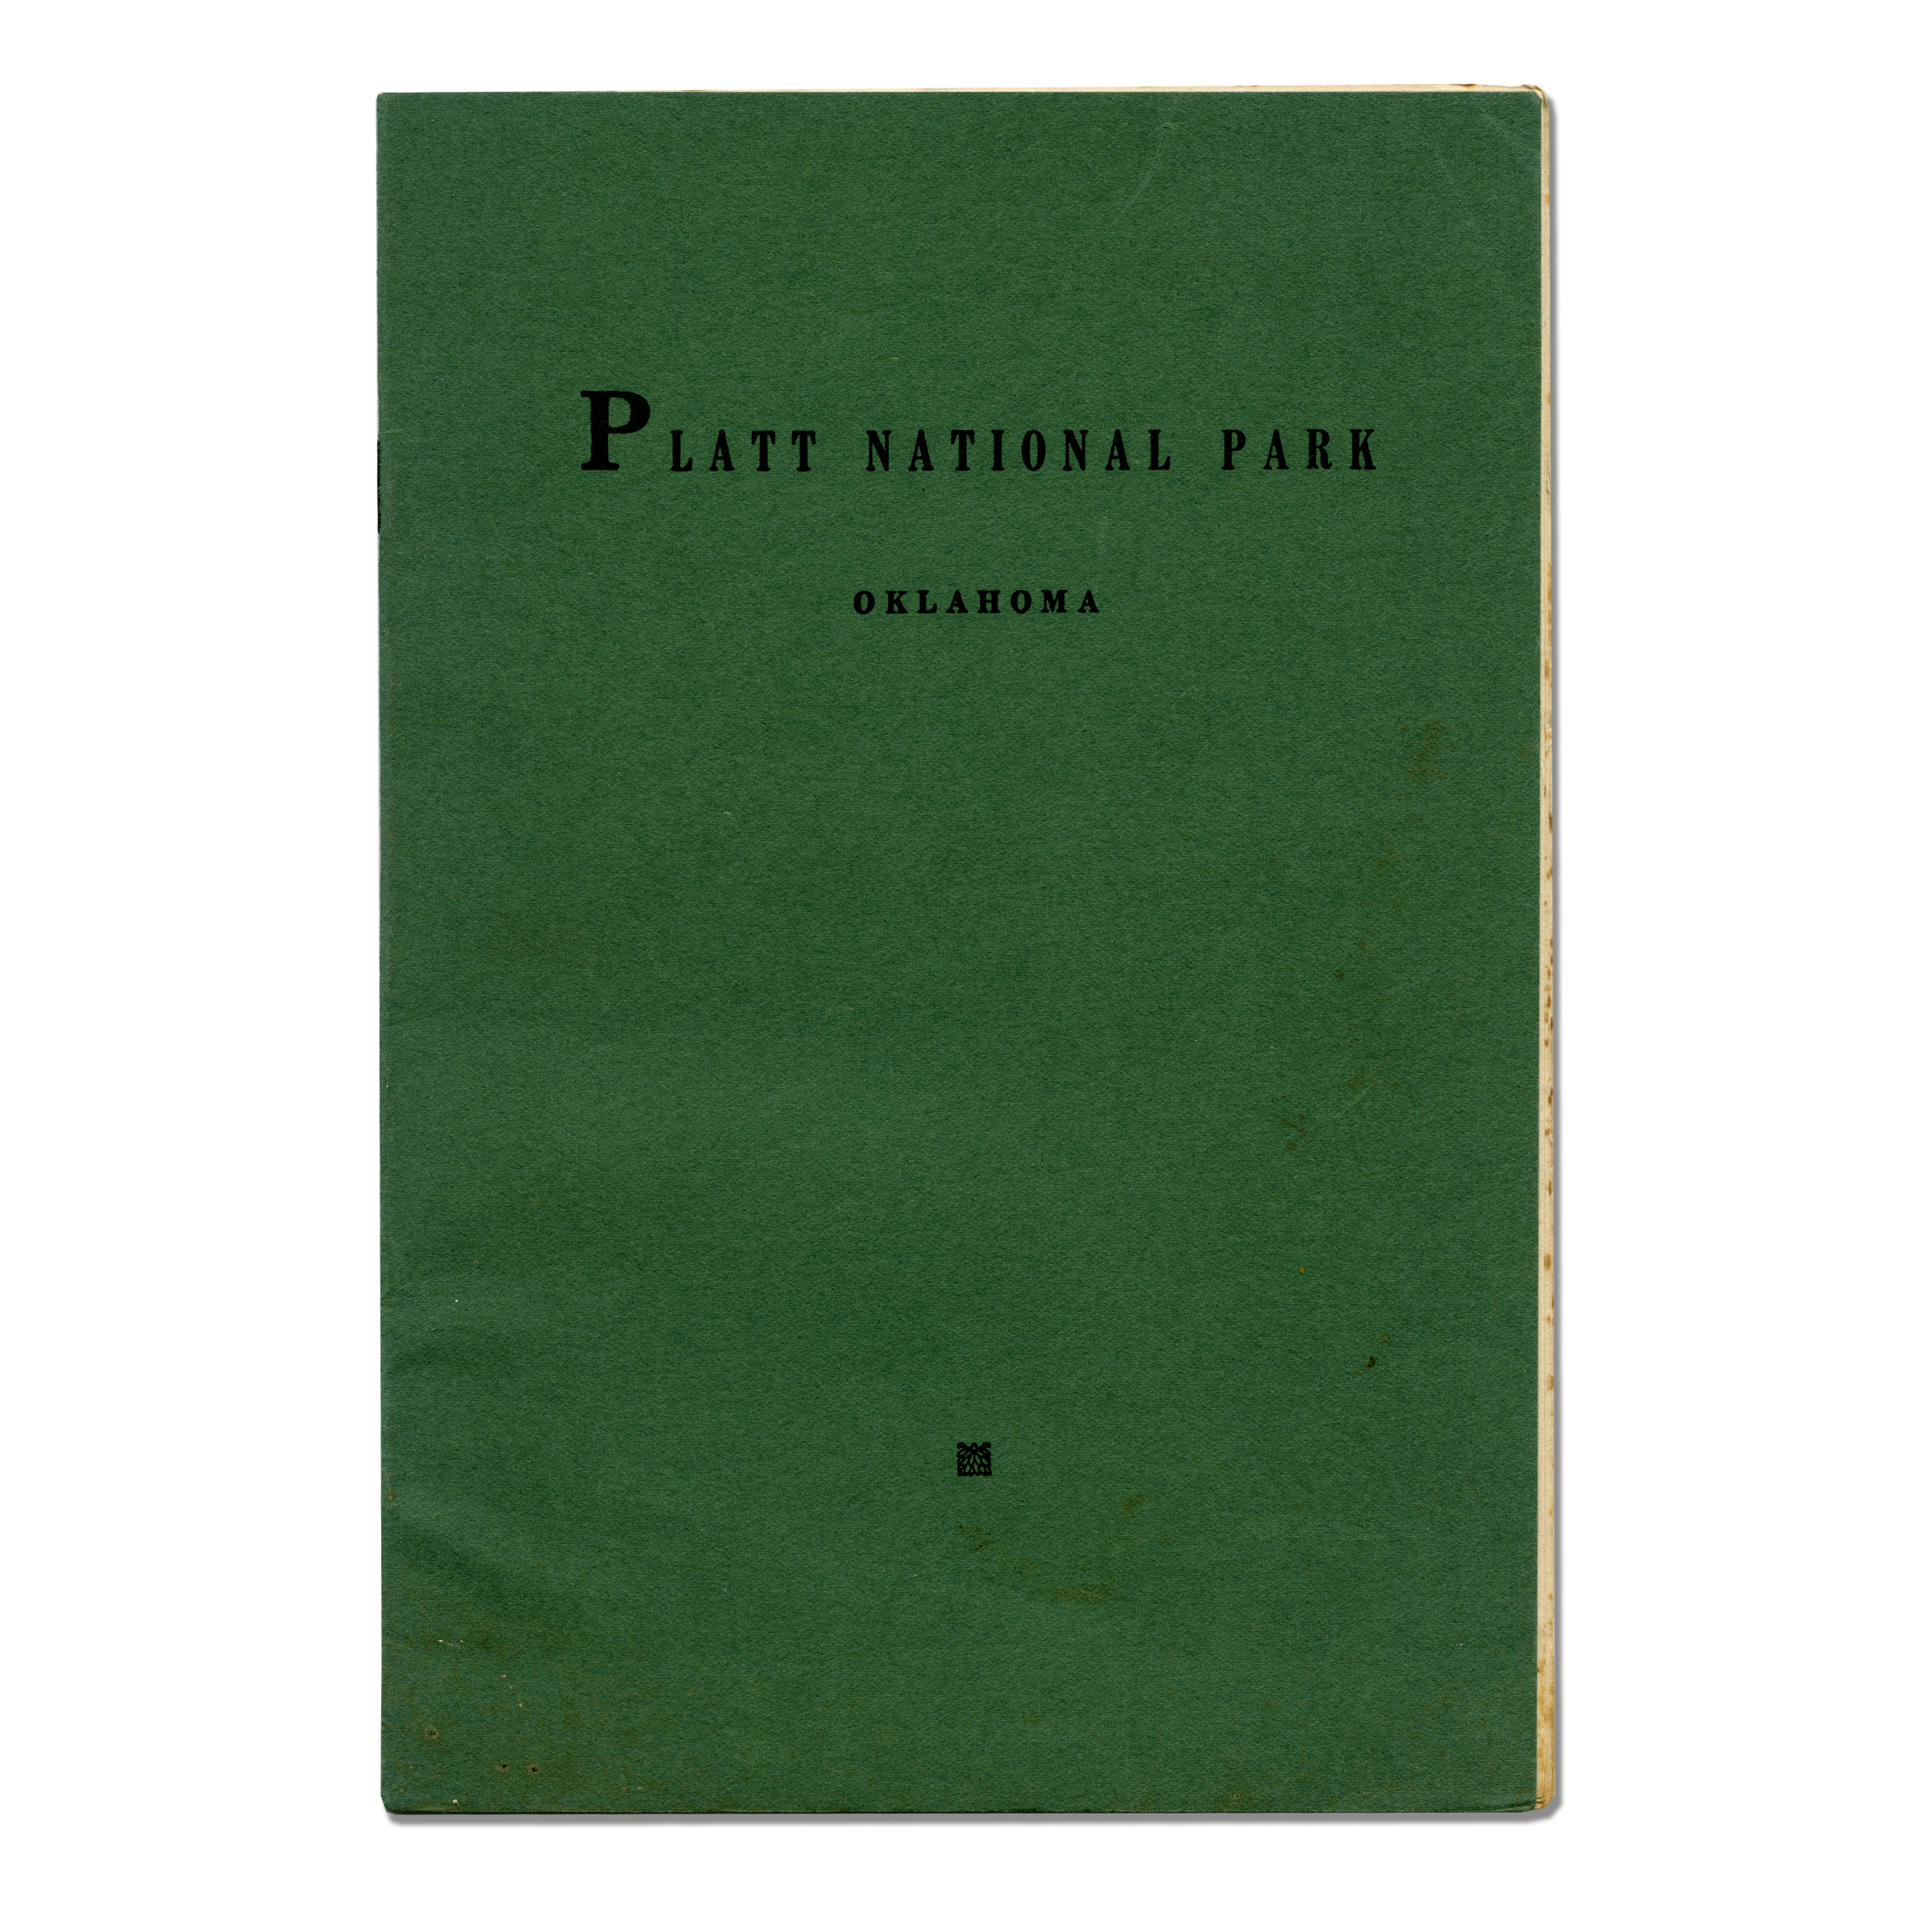 platt_national_park_brochure.jpg